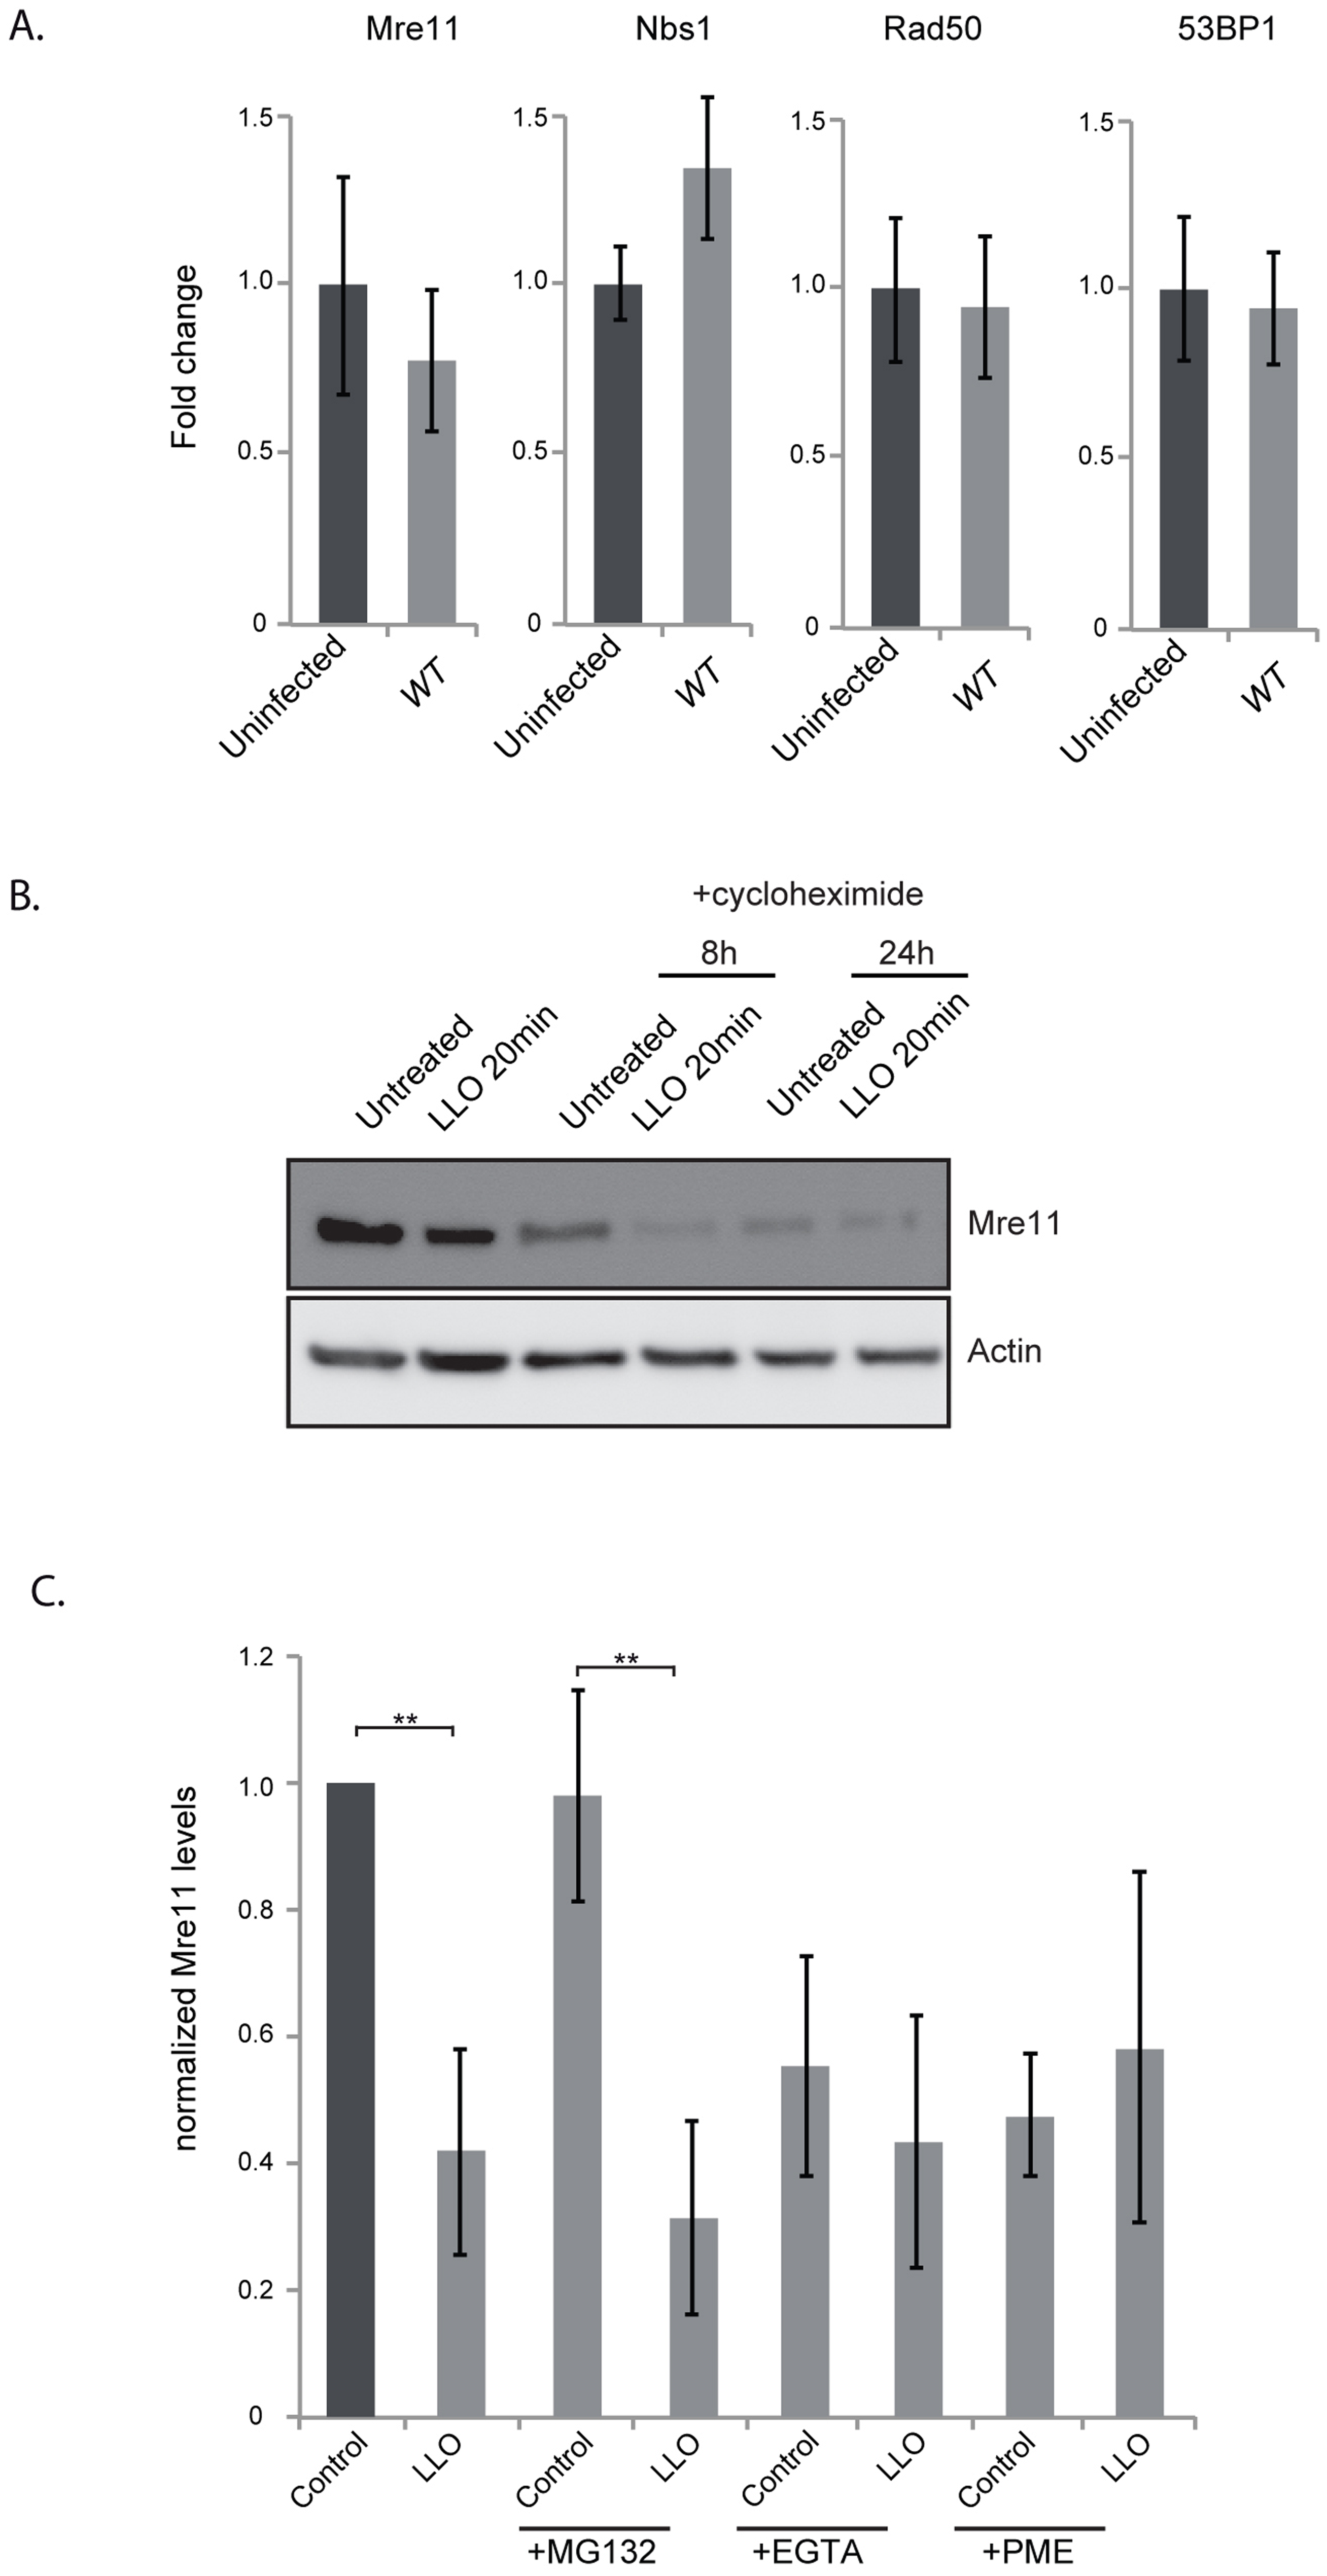 LLO induces degradation of Mre11 in an aspartyl-protease dependent manner.